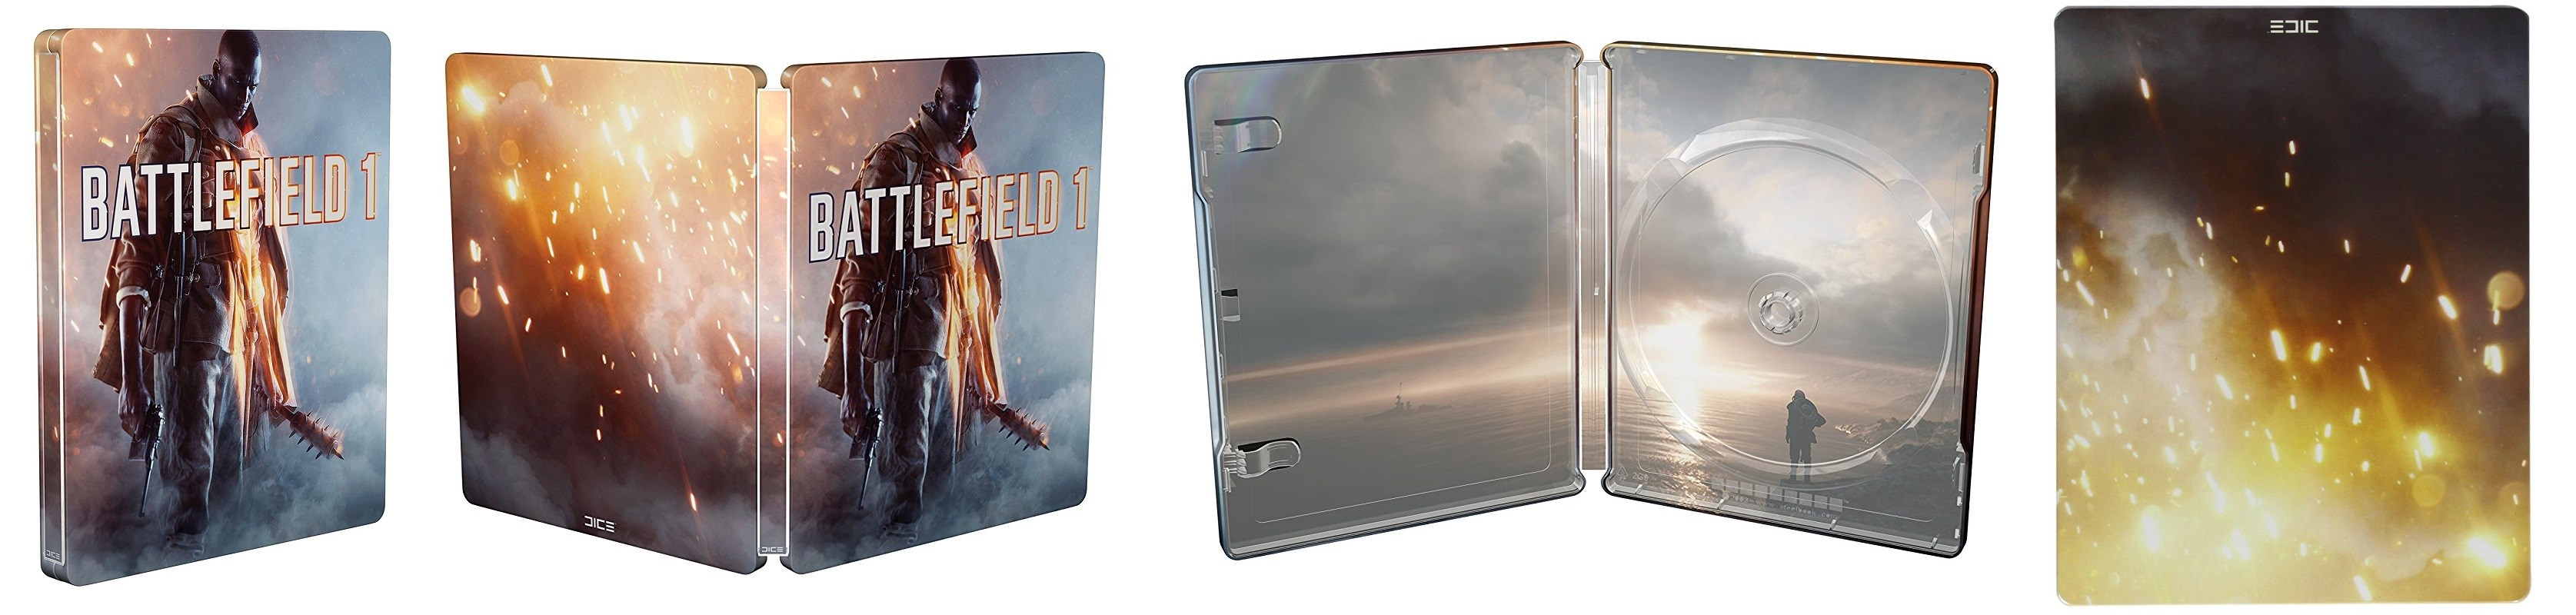 /attachments/087179113037107130190028204126050175023018075039/jplh_battlefield_1_-_steelbook_(_without_game_).jpg